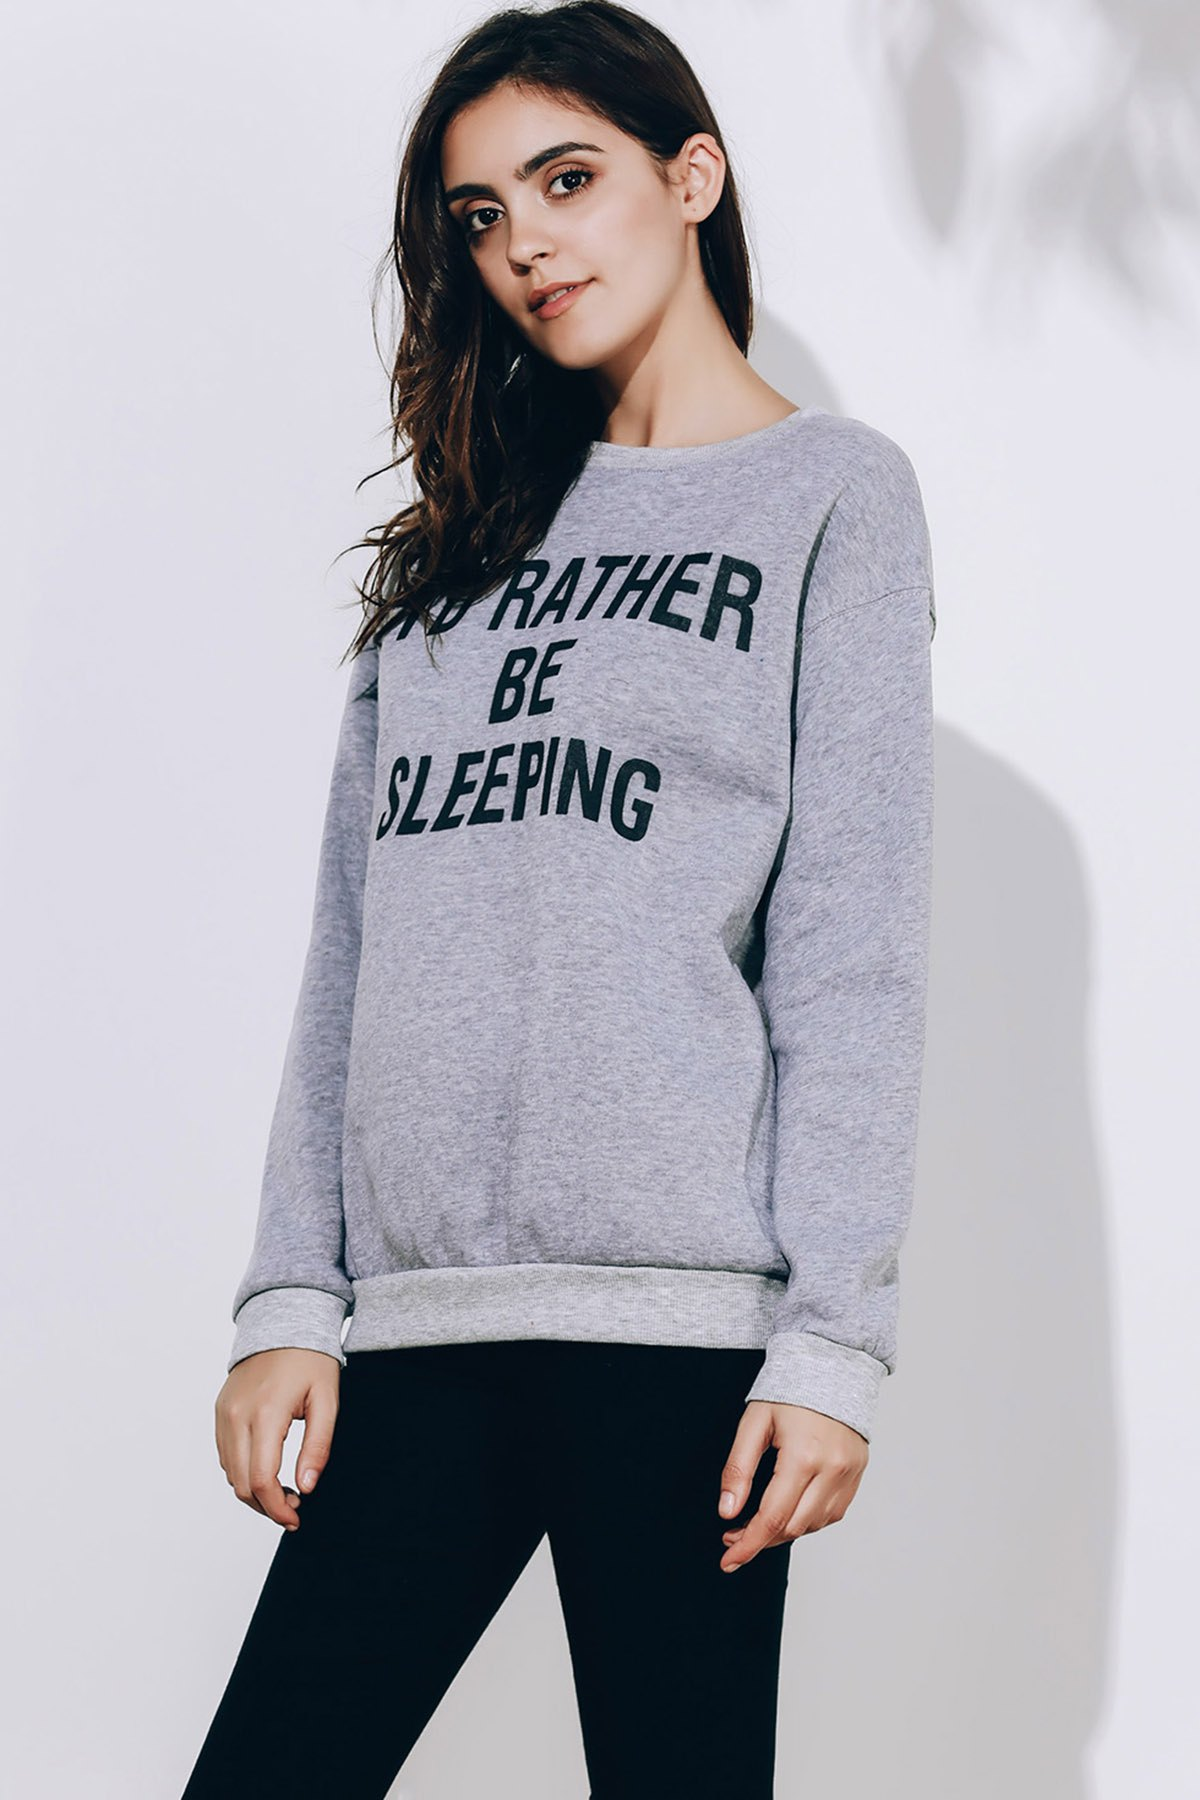 Womens Long Sleeve Round Neck Letter Pattern SweatshirtWOMEN<br><br>Size: M; Color: GRAY; Material: Polyester; Shirt Length: Regular; Sleeve Length: Full; Style: Fashion; Pattern Style: Letter; Season: Spring,Fall; Weight: 0.3080kg; Package Contents: 1 x Sweatshirt;